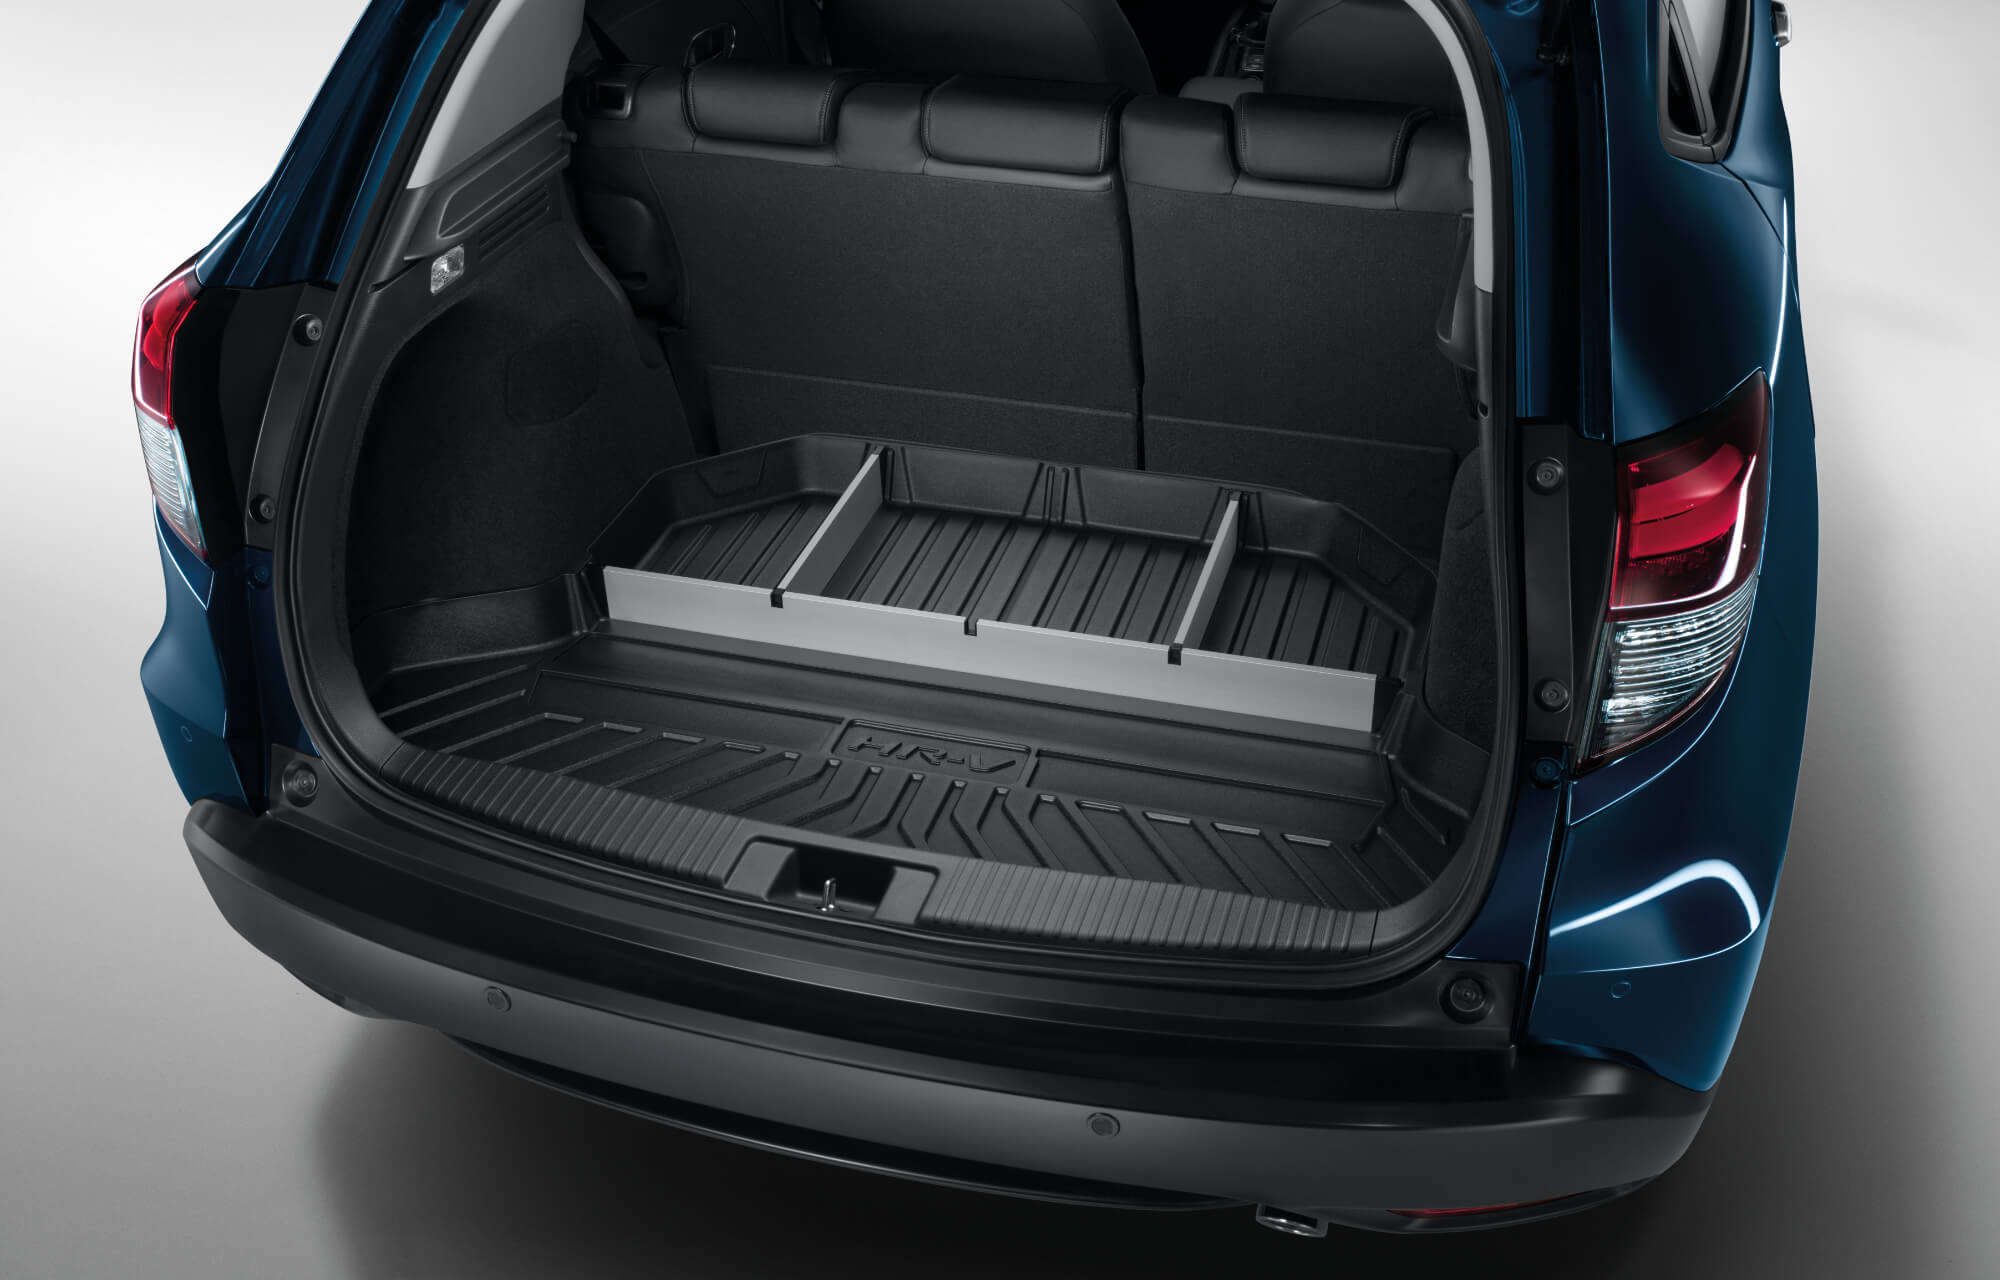 HR-V Boot Tray with Dividers